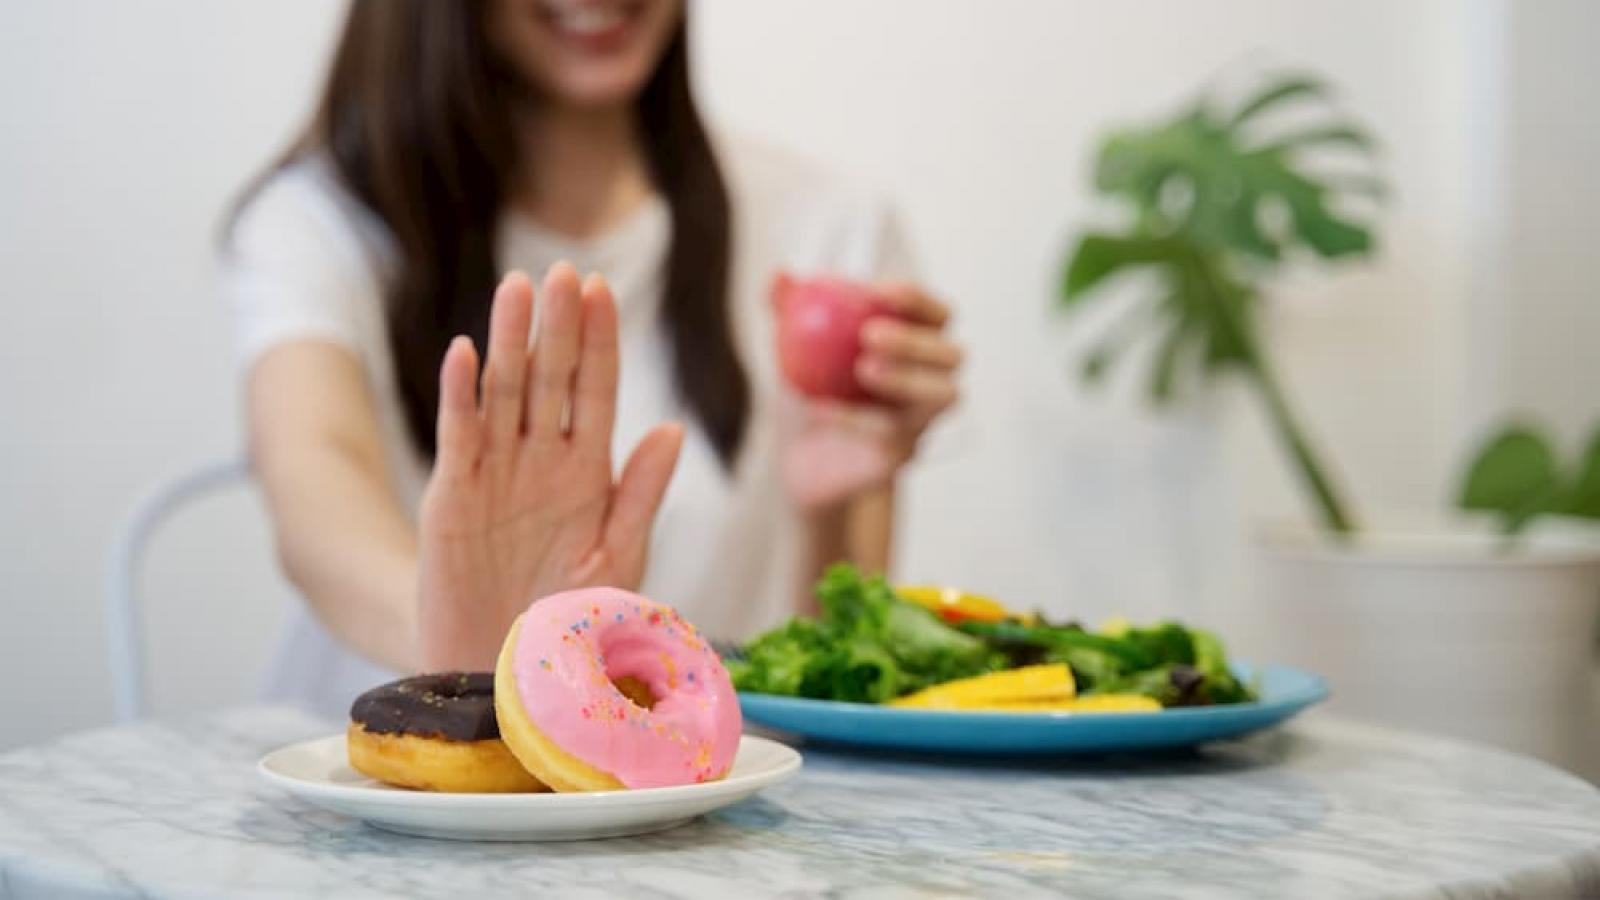 Five tips for a healthy weight loss